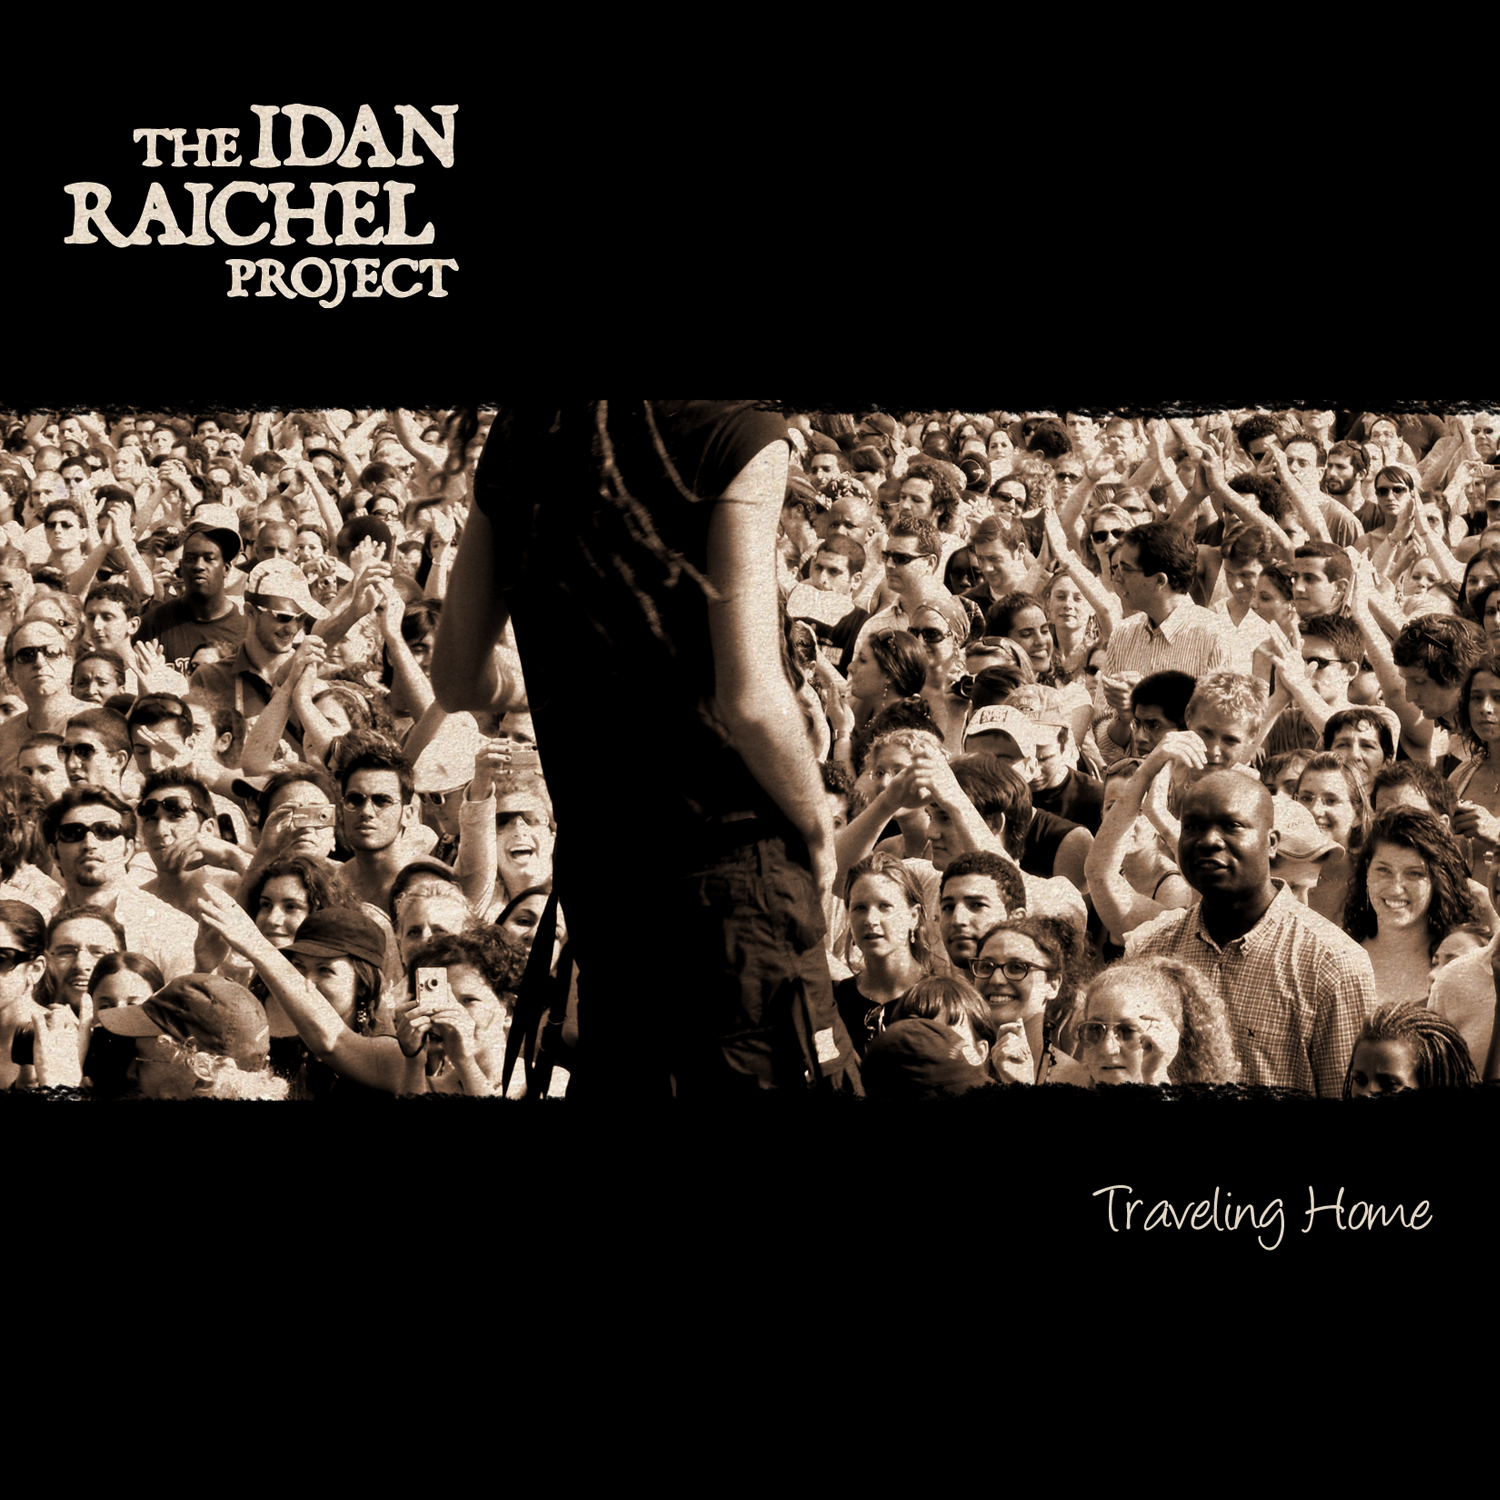 Album The Idan Raichel Project – Traveling Home patr 1 Cover